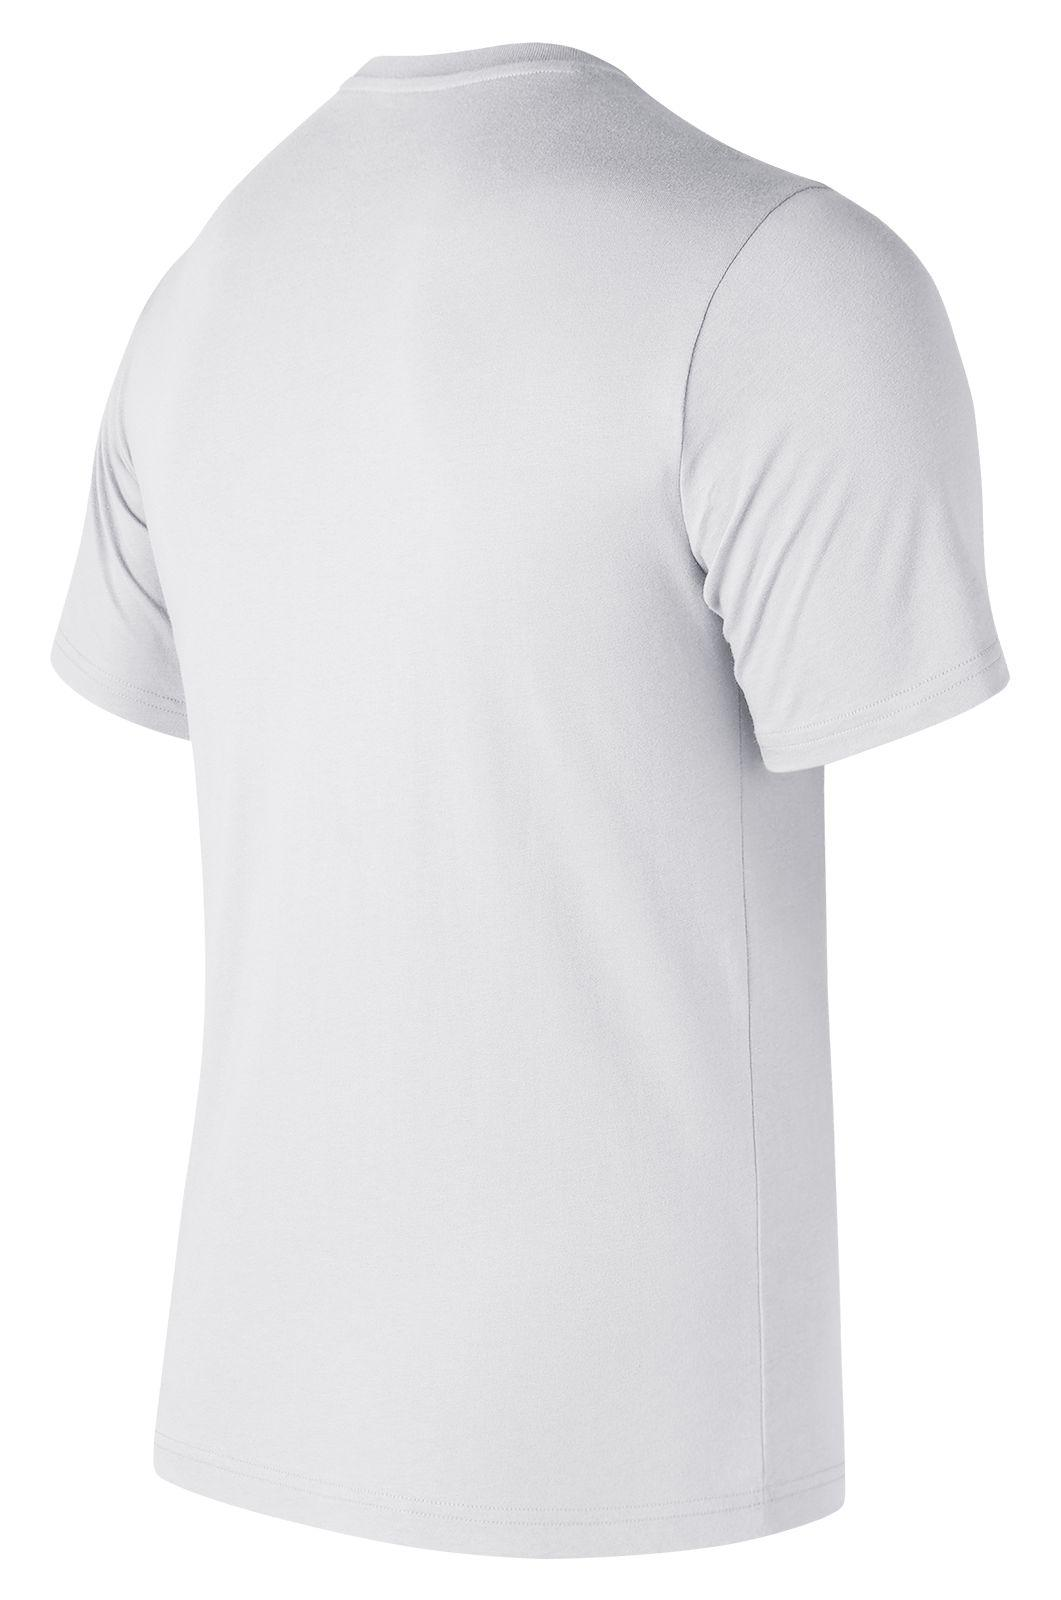 443df0b0e8f25 Lyst - New Balance Essentials Stacked Logo Tee in White for Men